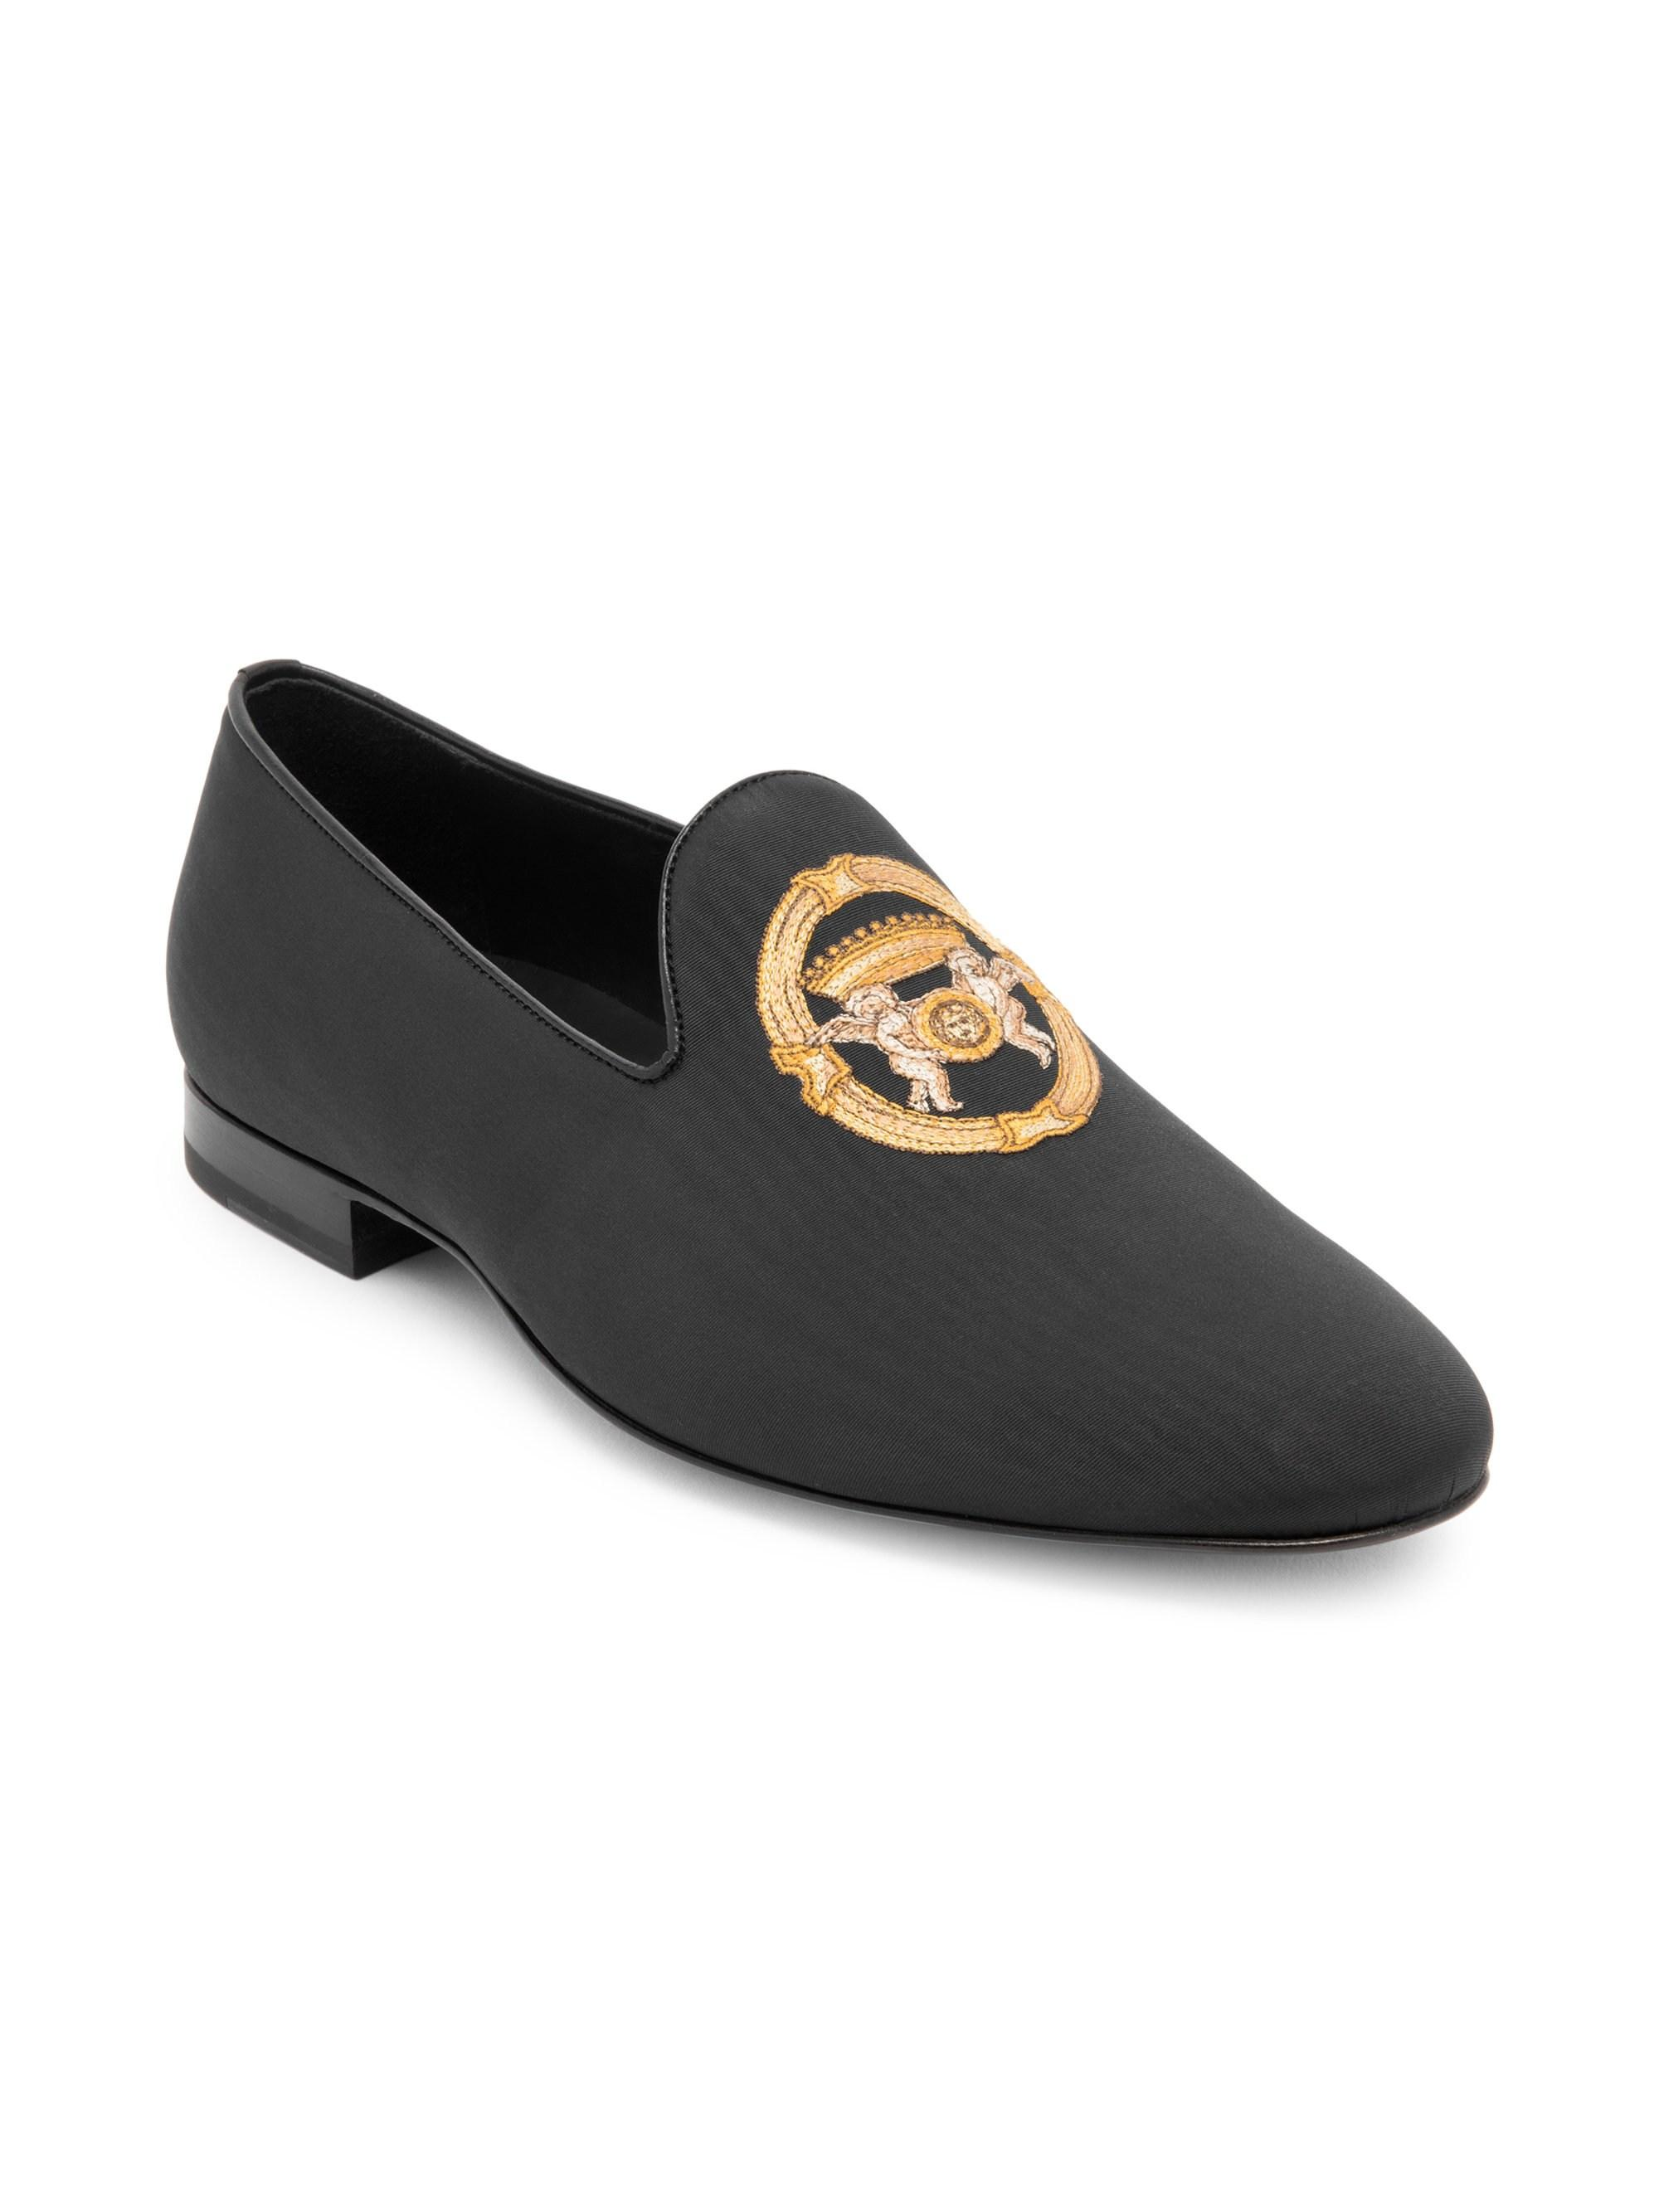 1a781e55003 Lyst - Versace Medusa Leather Loafers in Black for Men